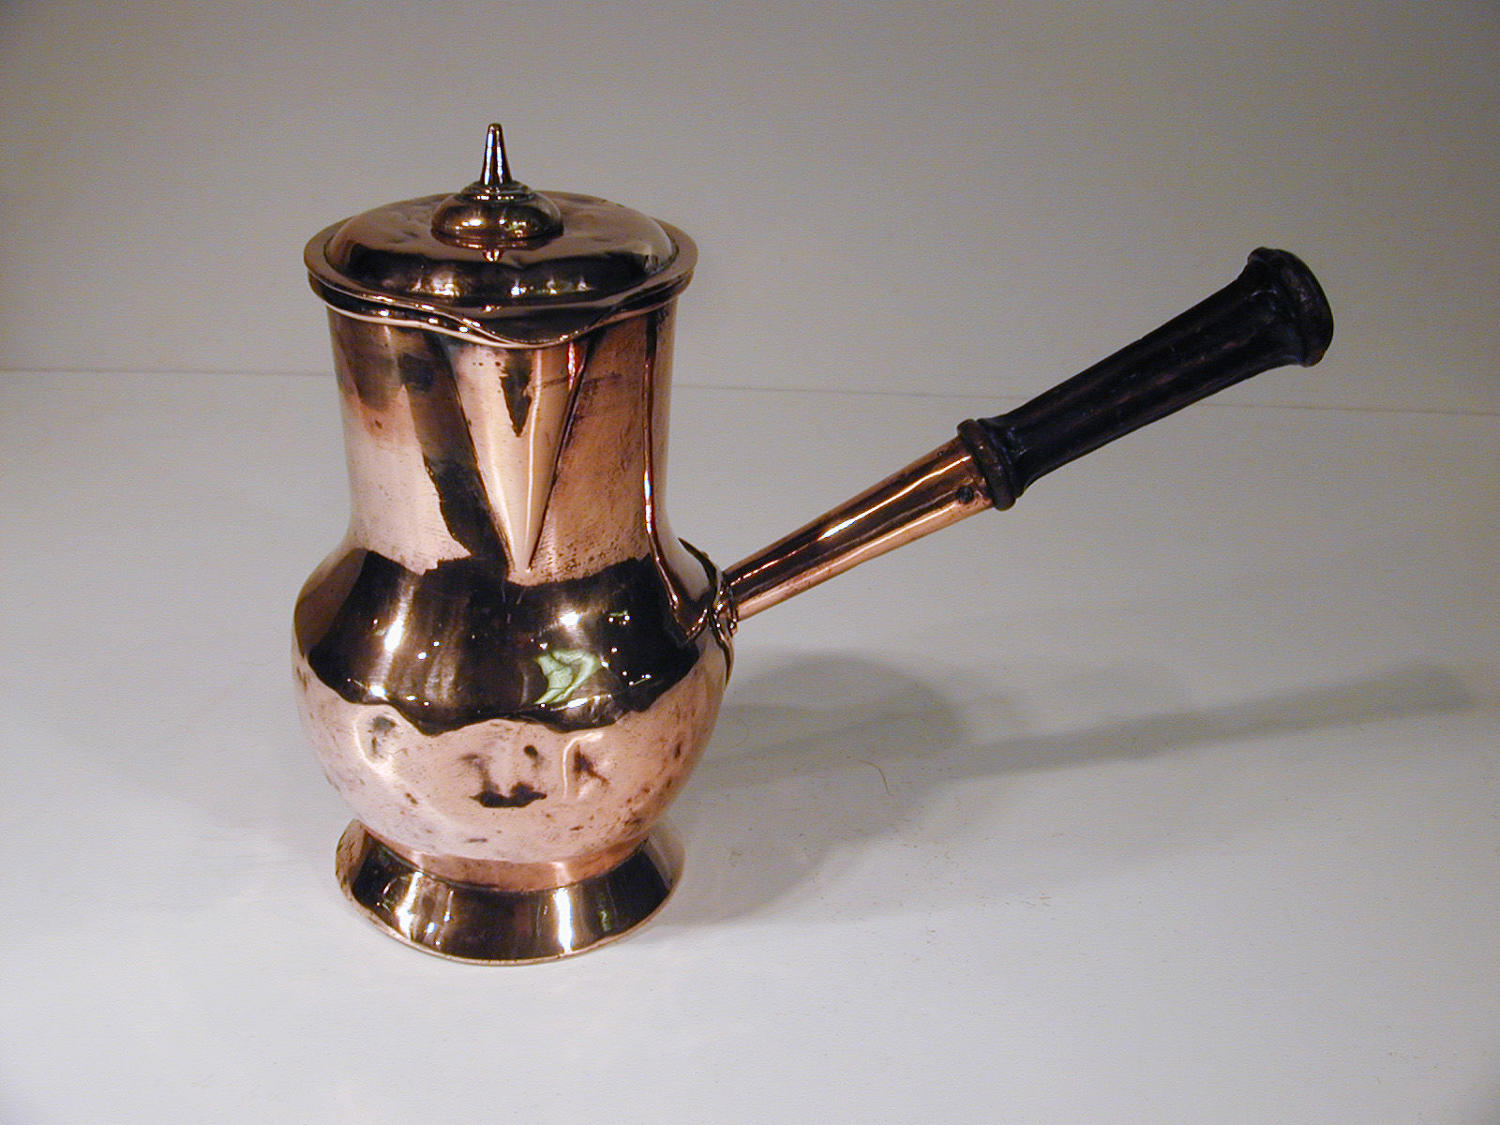 Rare antique 18th century copper chocolate pot